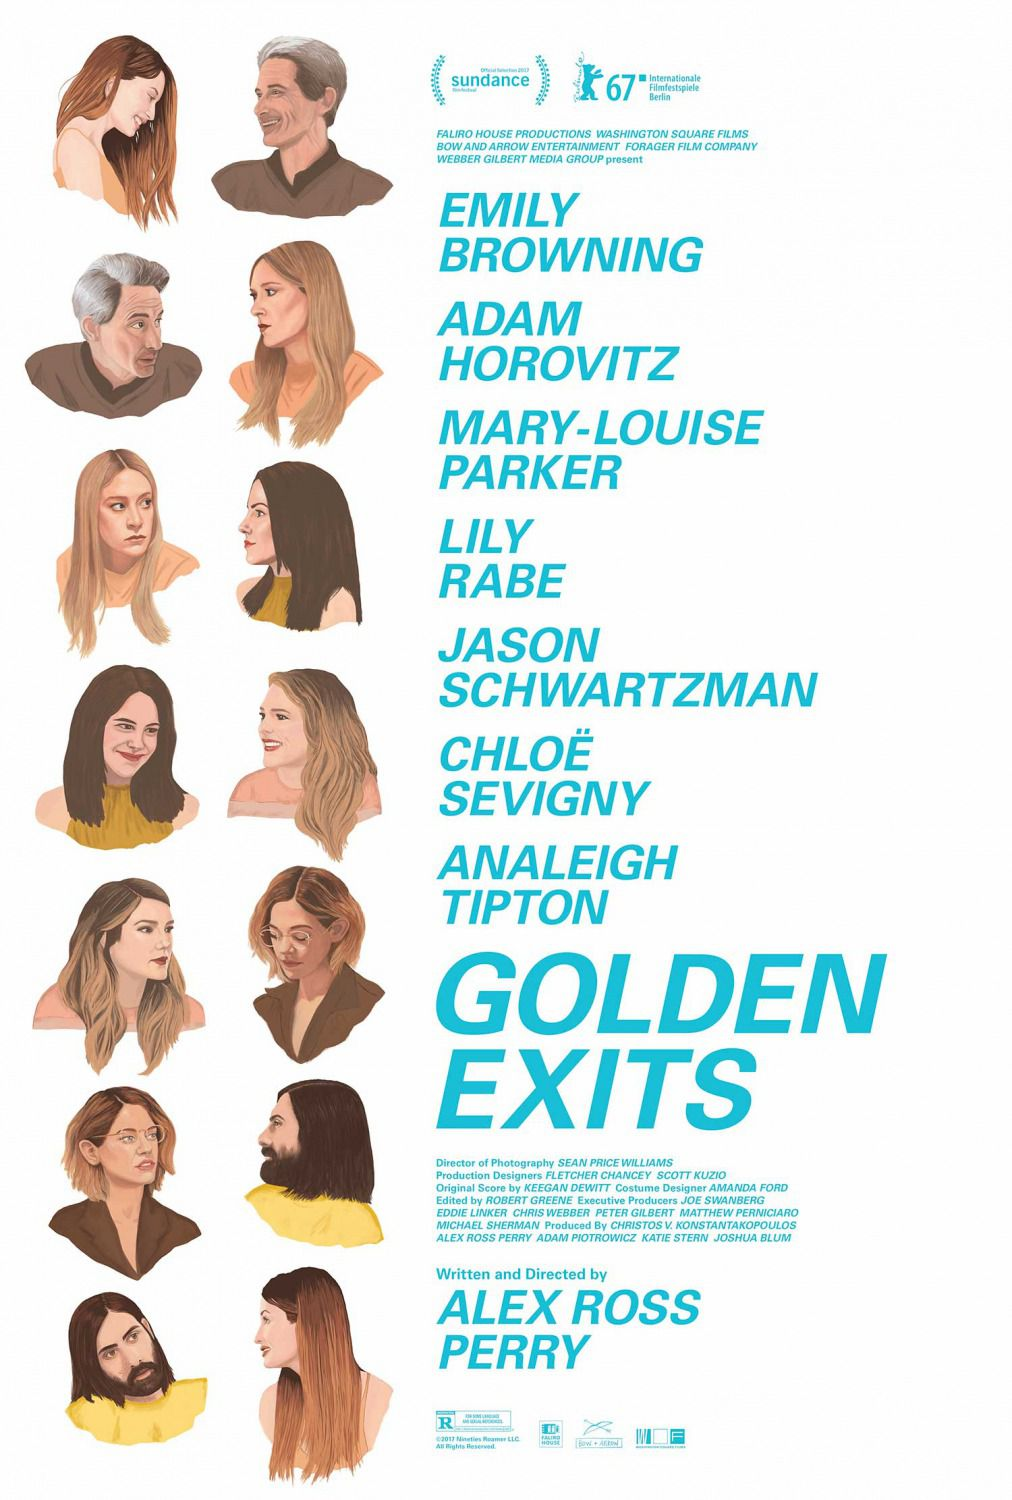 Golden Exits - Emily Browning, Adam Horovitz, Mary Louise Parker, Lily Rabe, Jason Schwartzman, Chloe Sevigny, Analeigh Tipton - poster 2018